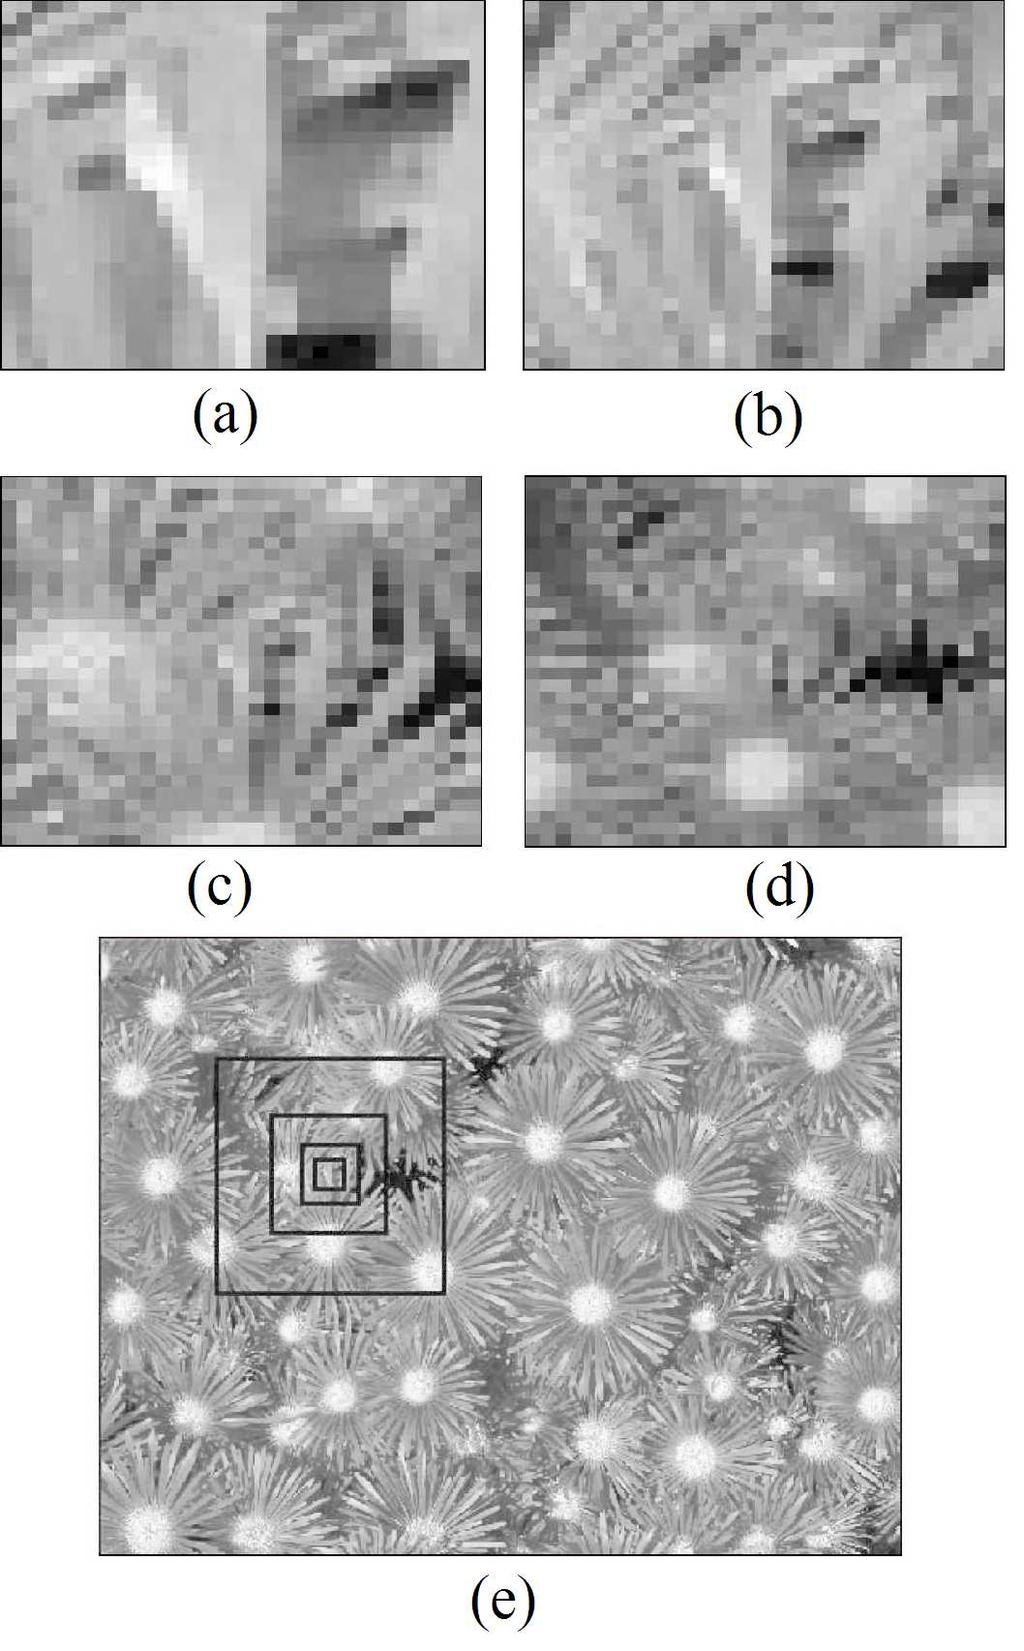 Figure 3.5: (a), (b), (c), (d), 31 31 patches taken from the image shown in Figure 3.3 from finer scales to coarser scales, respectively, (e) the projection of patches onto the original image.